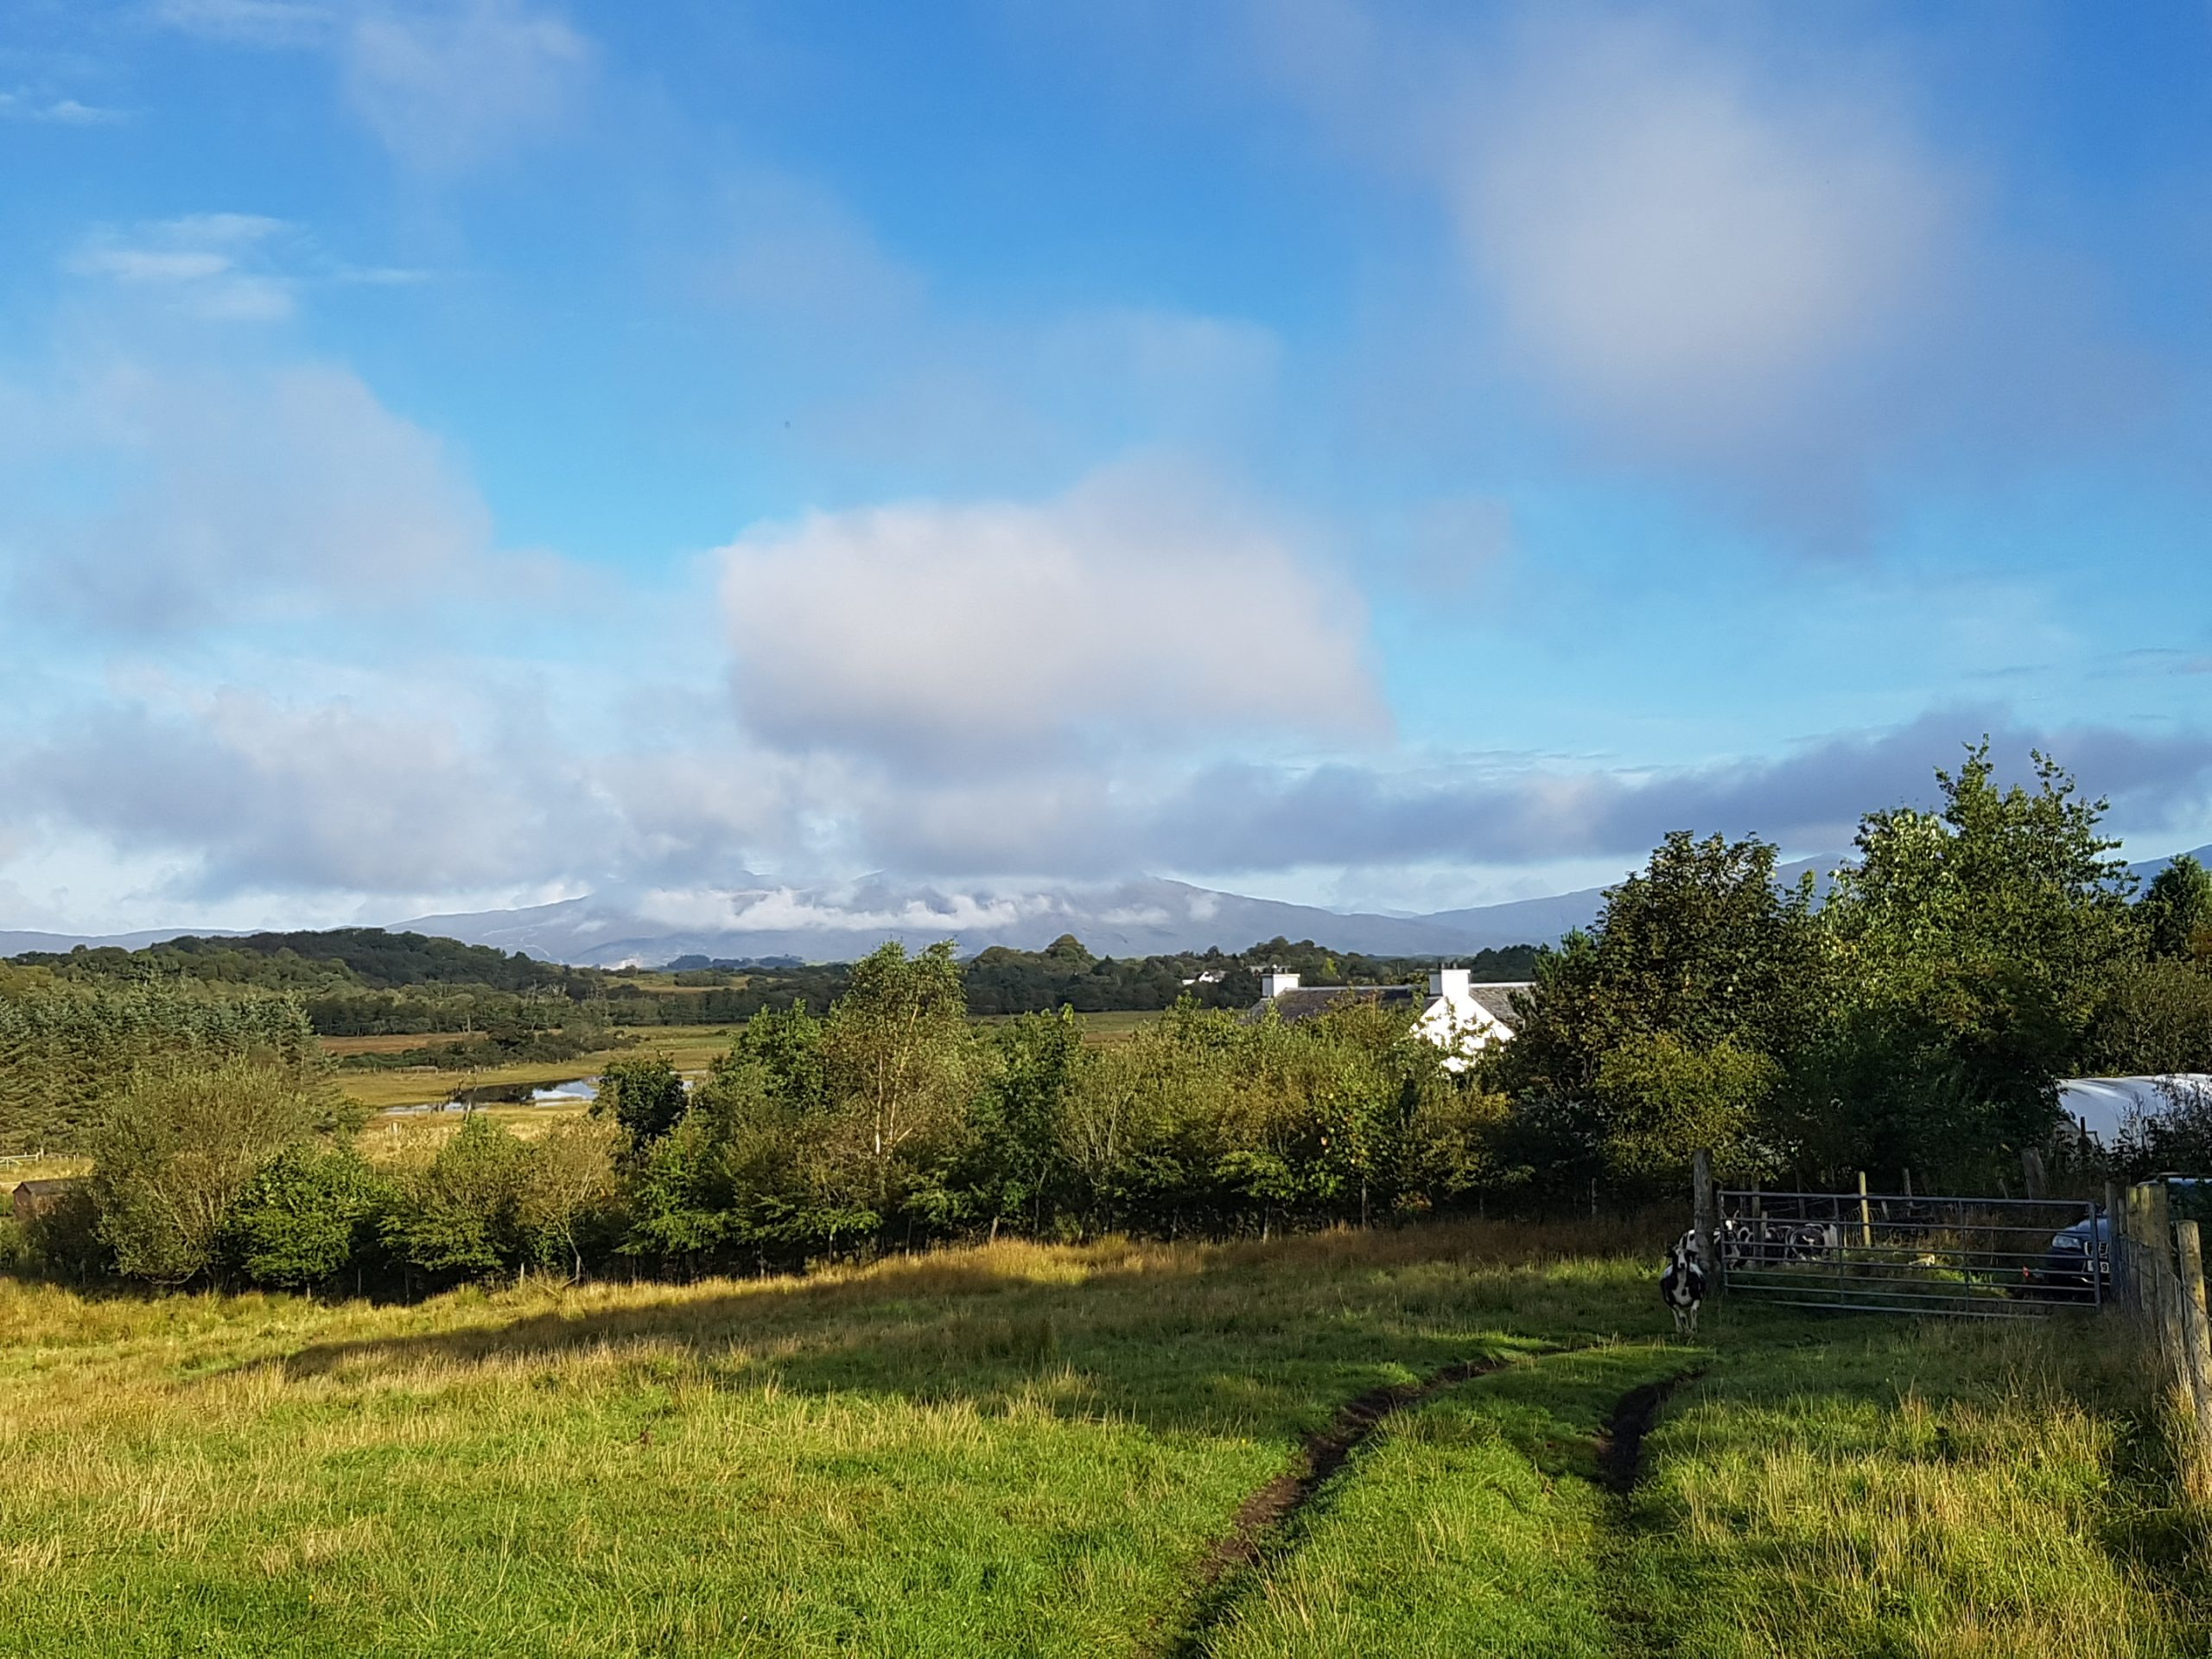 peace and quiet in rural farm setting